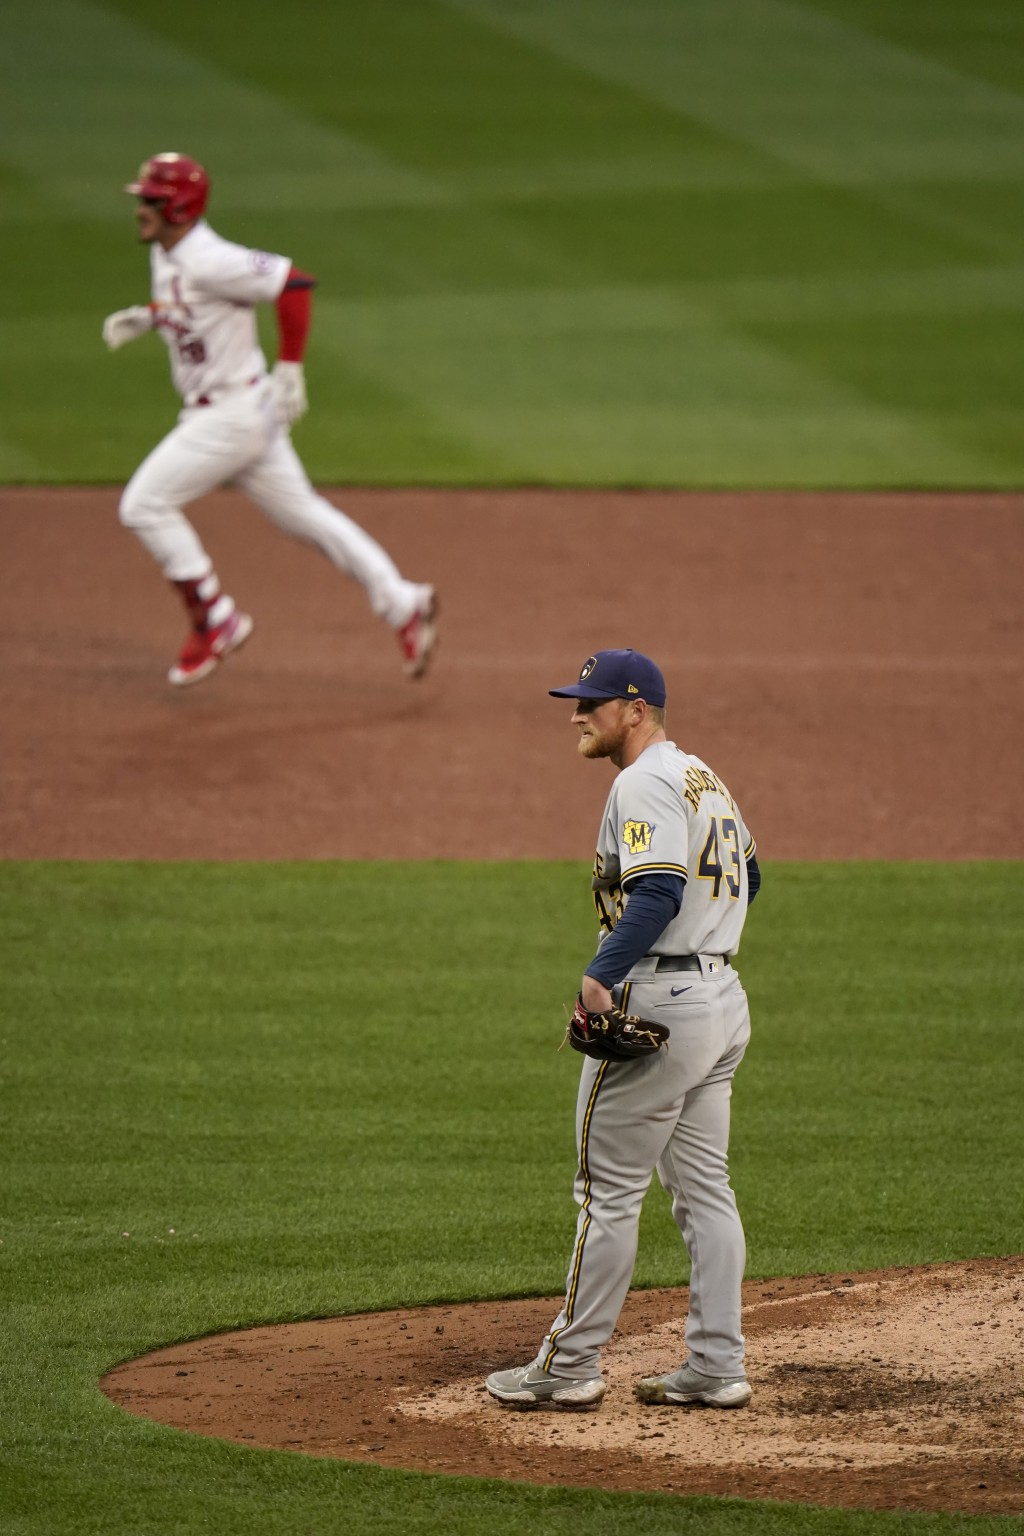 St. Louis Cardinals' Nolan Arenado, top, rounds the bases after hitting a two-run home run off Milwaukee Brewers relief pitcher Drew Rasmussen (43) du...